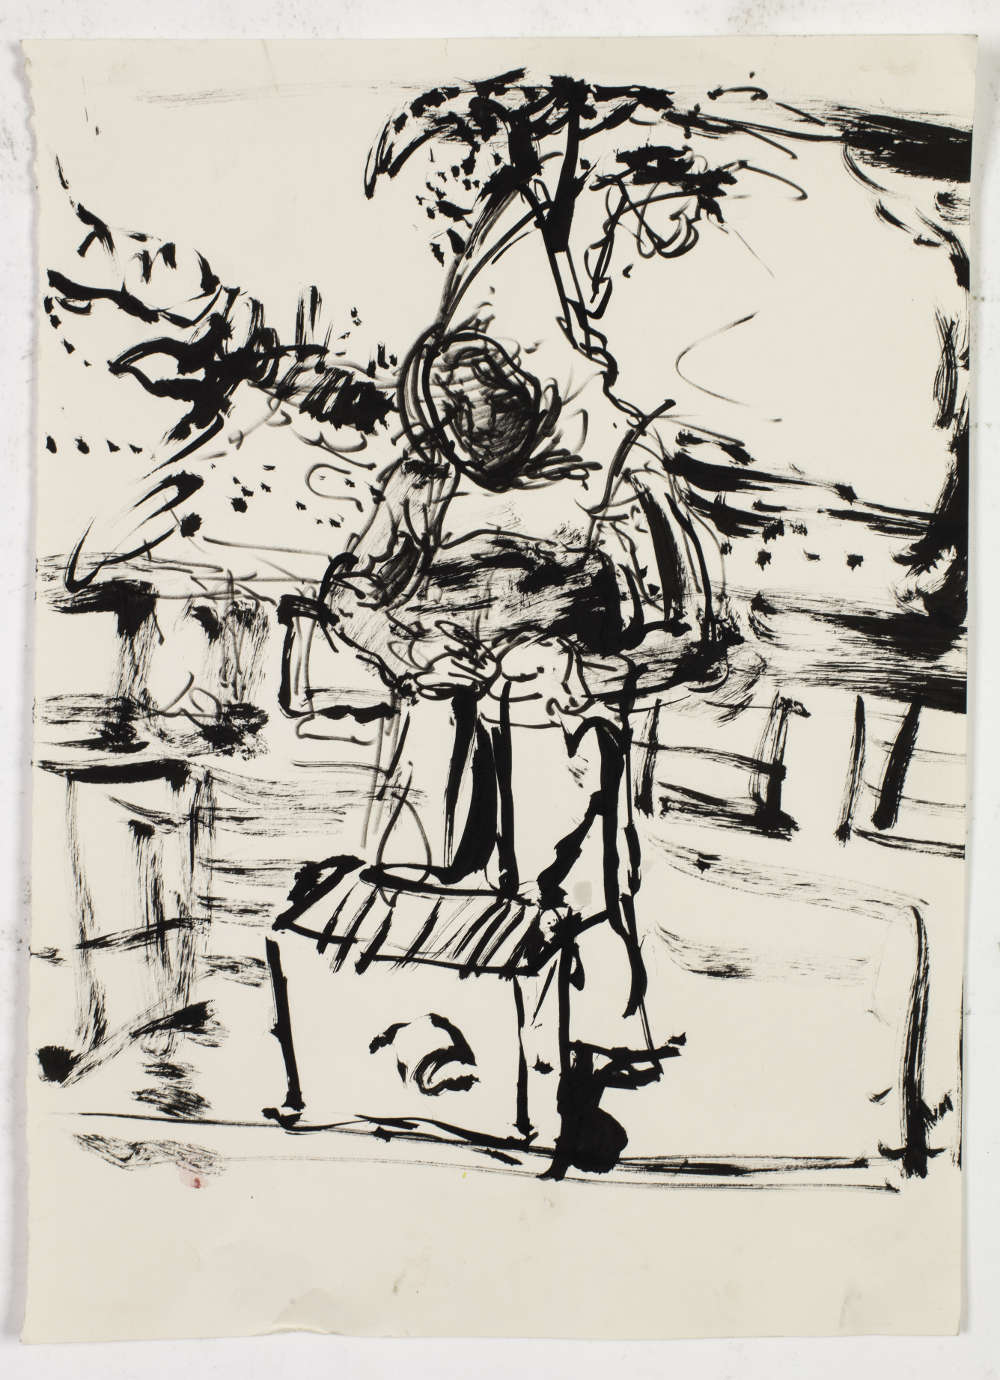 Catherine Goodman, Beekeeper, 2018. Ink on paper 42 x 30.5 cm / 16 1/2 x 12 in © Catherine Goodman. Courtesy of the artist and Hauser & Wirth